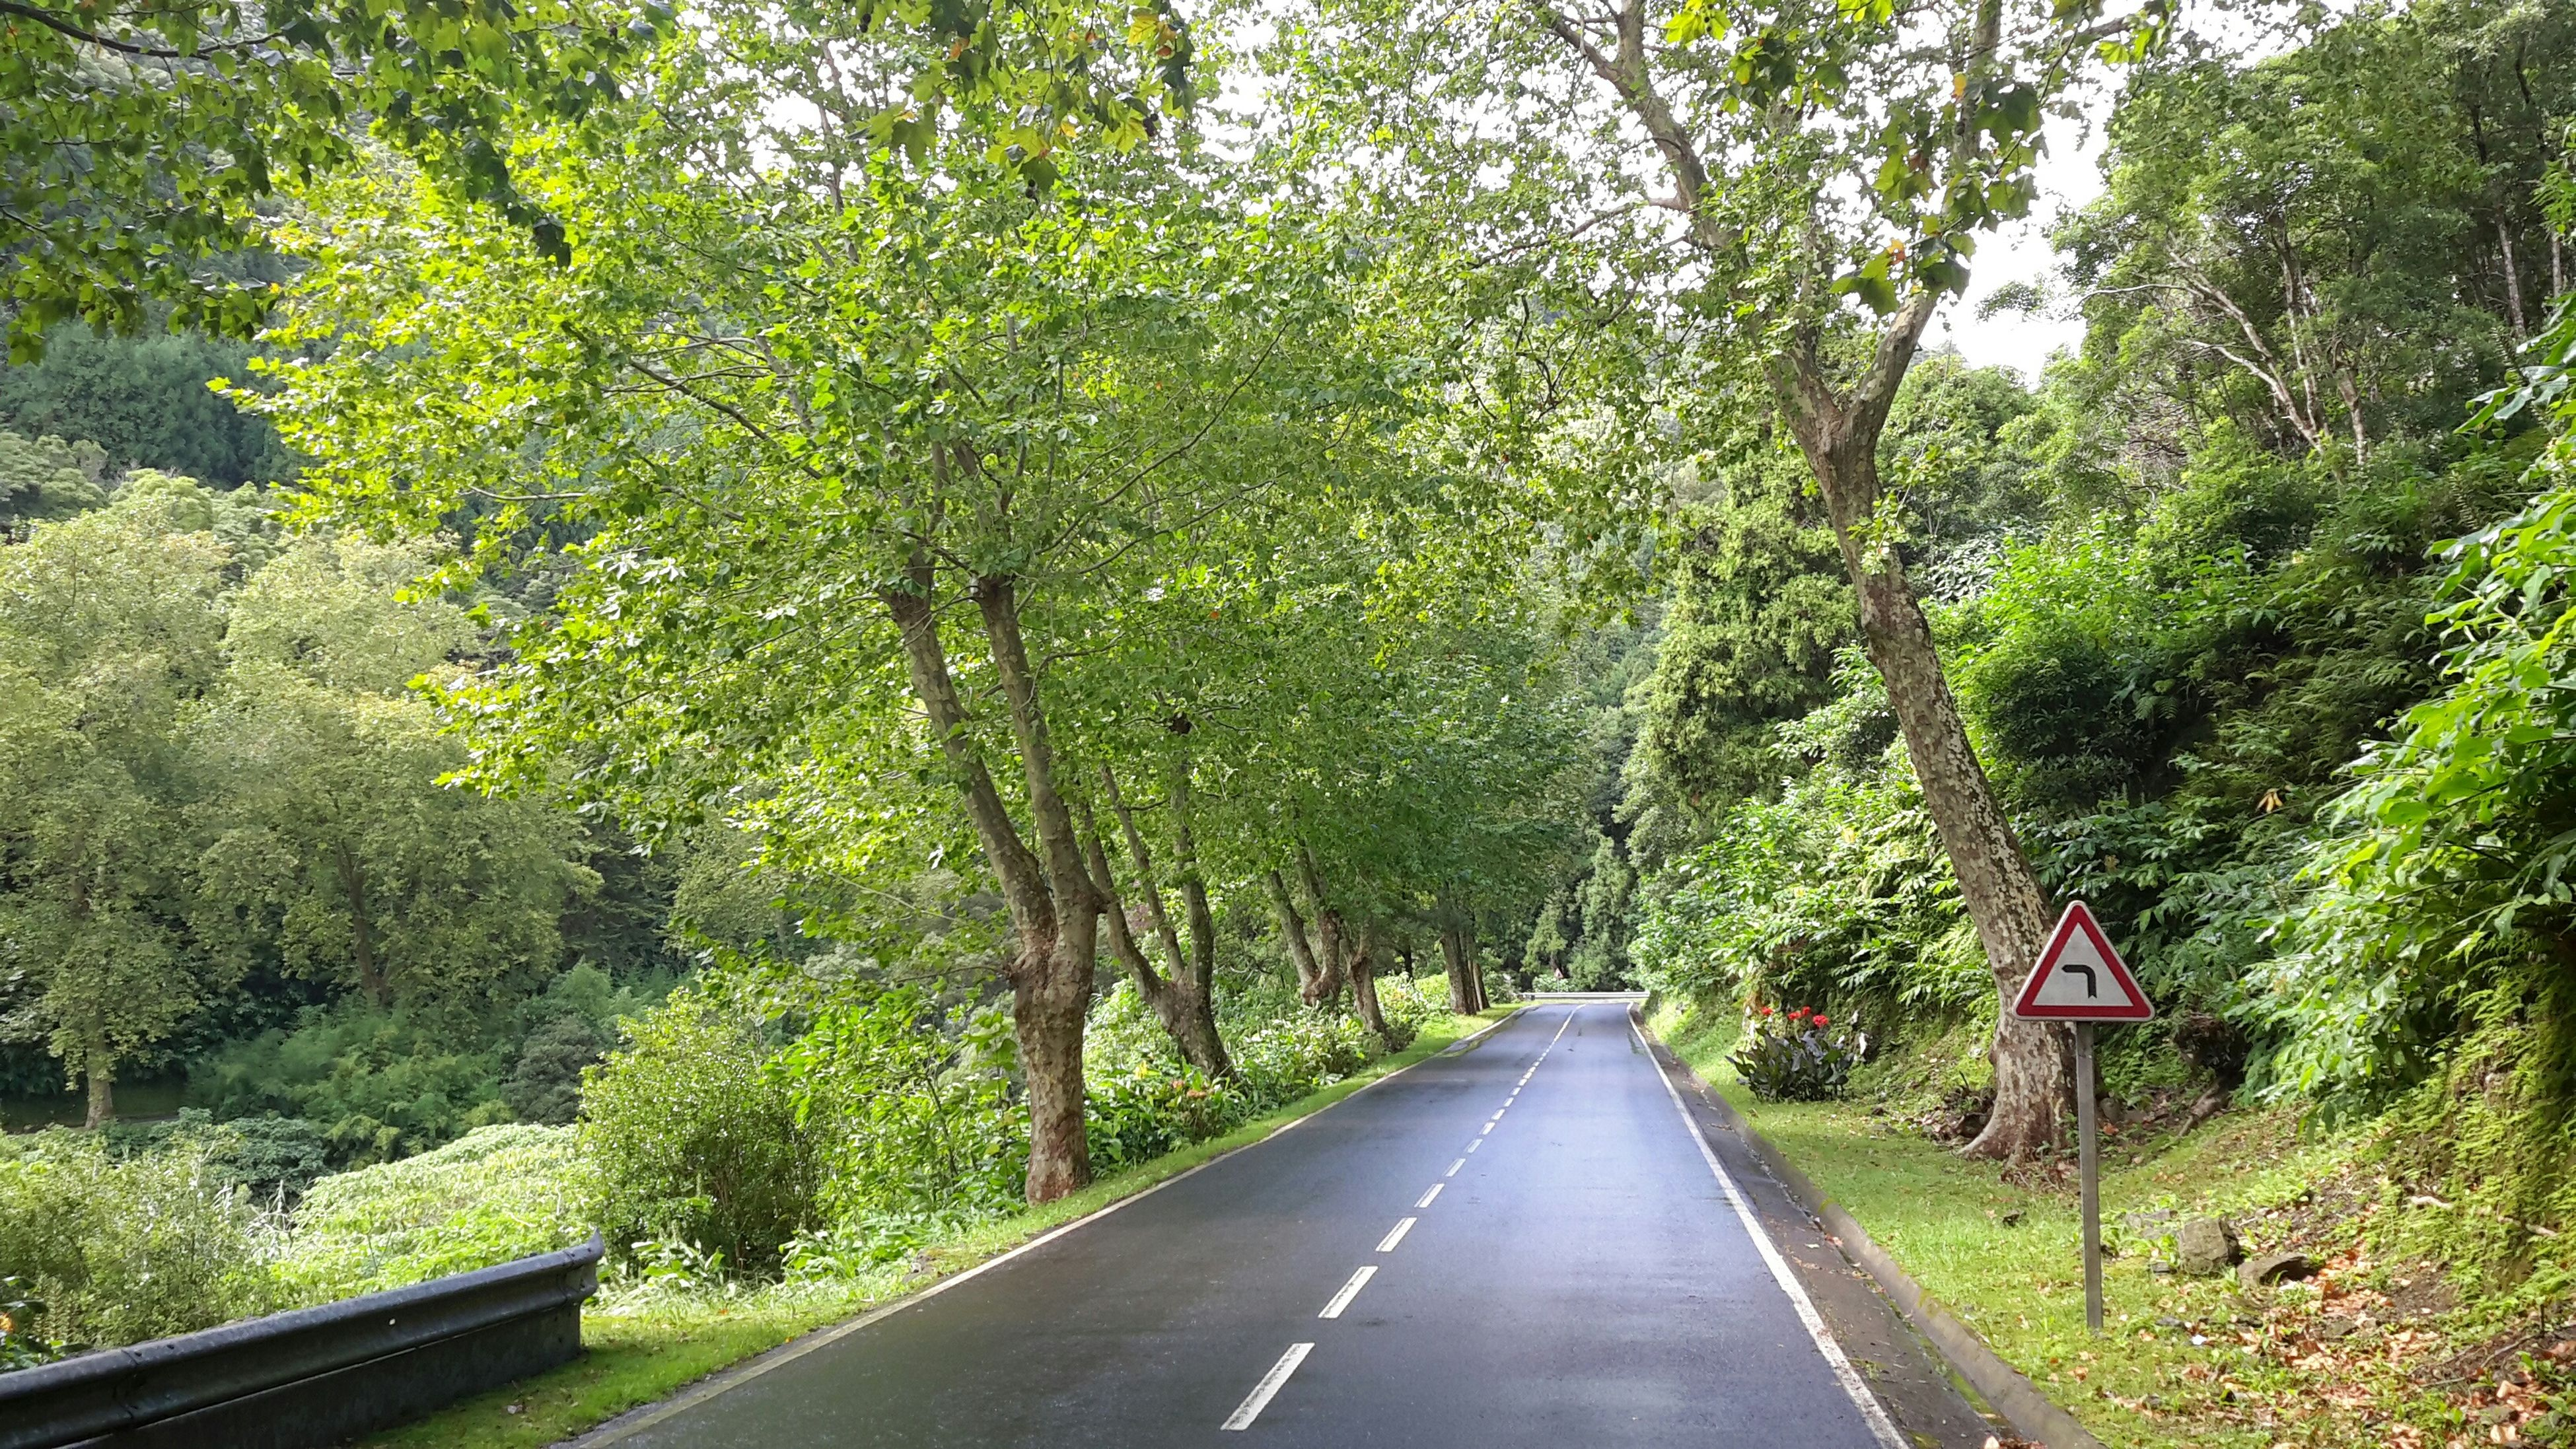 tree, the way forward, transportation, diminishing perspective, road, growth, vanishing point, green color, nature, tranquility, forest, branch, empty road, long, lush foliage, tranquil scene, beauty in nature, day, country road, no people